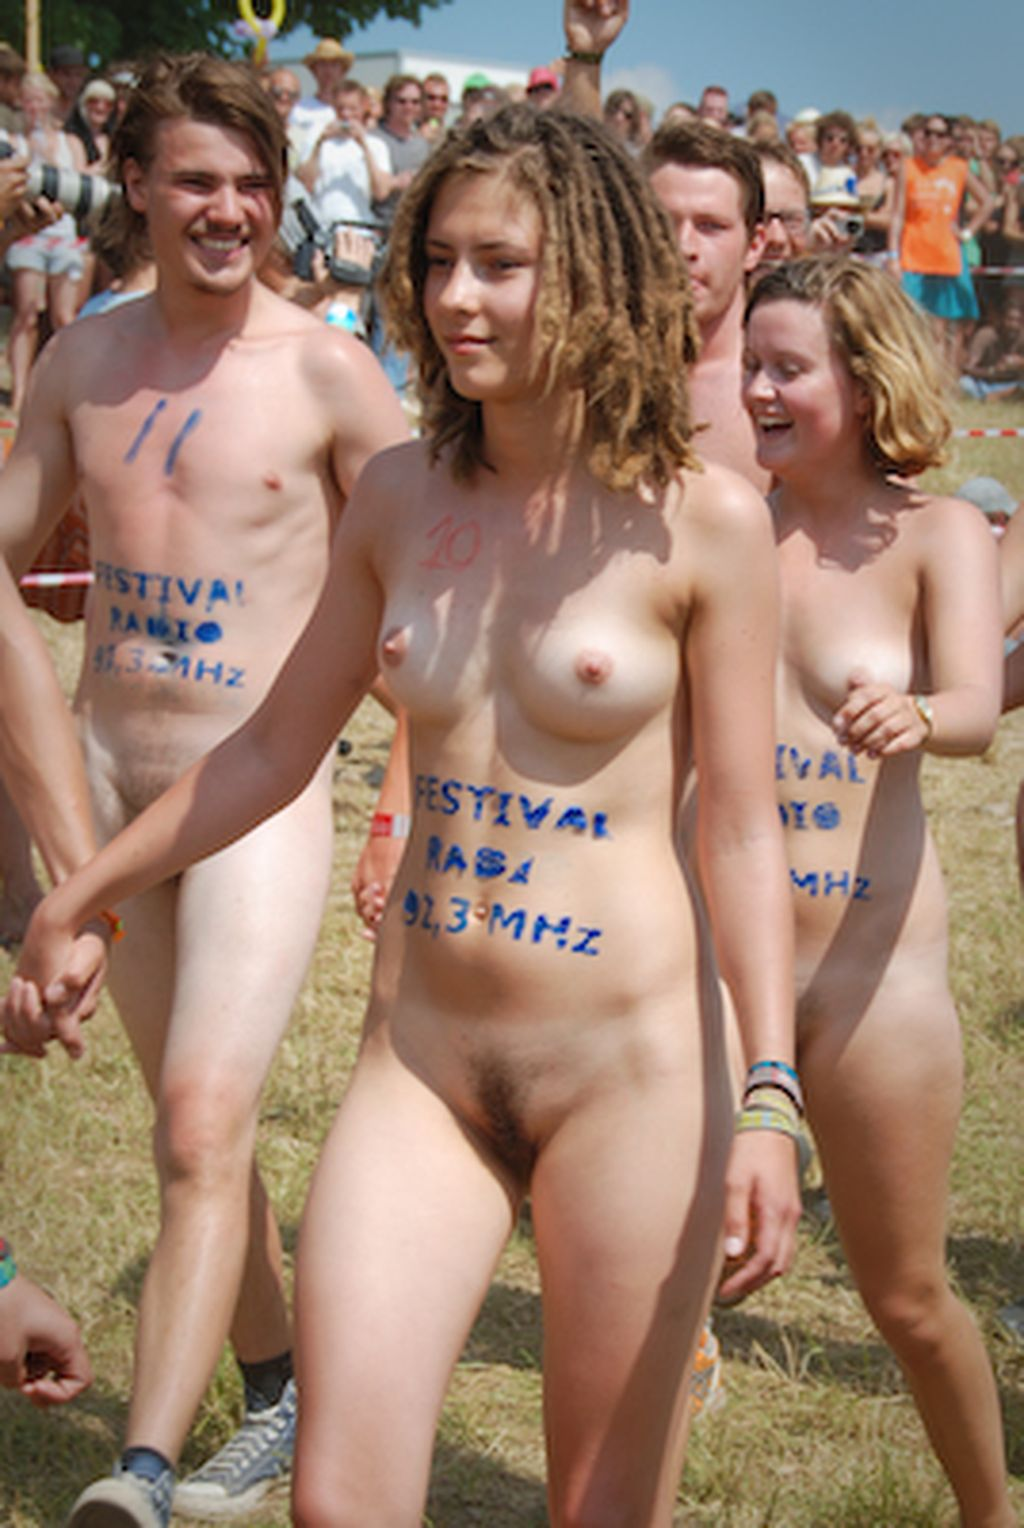 Simply remarkable College naked run girl assured, what